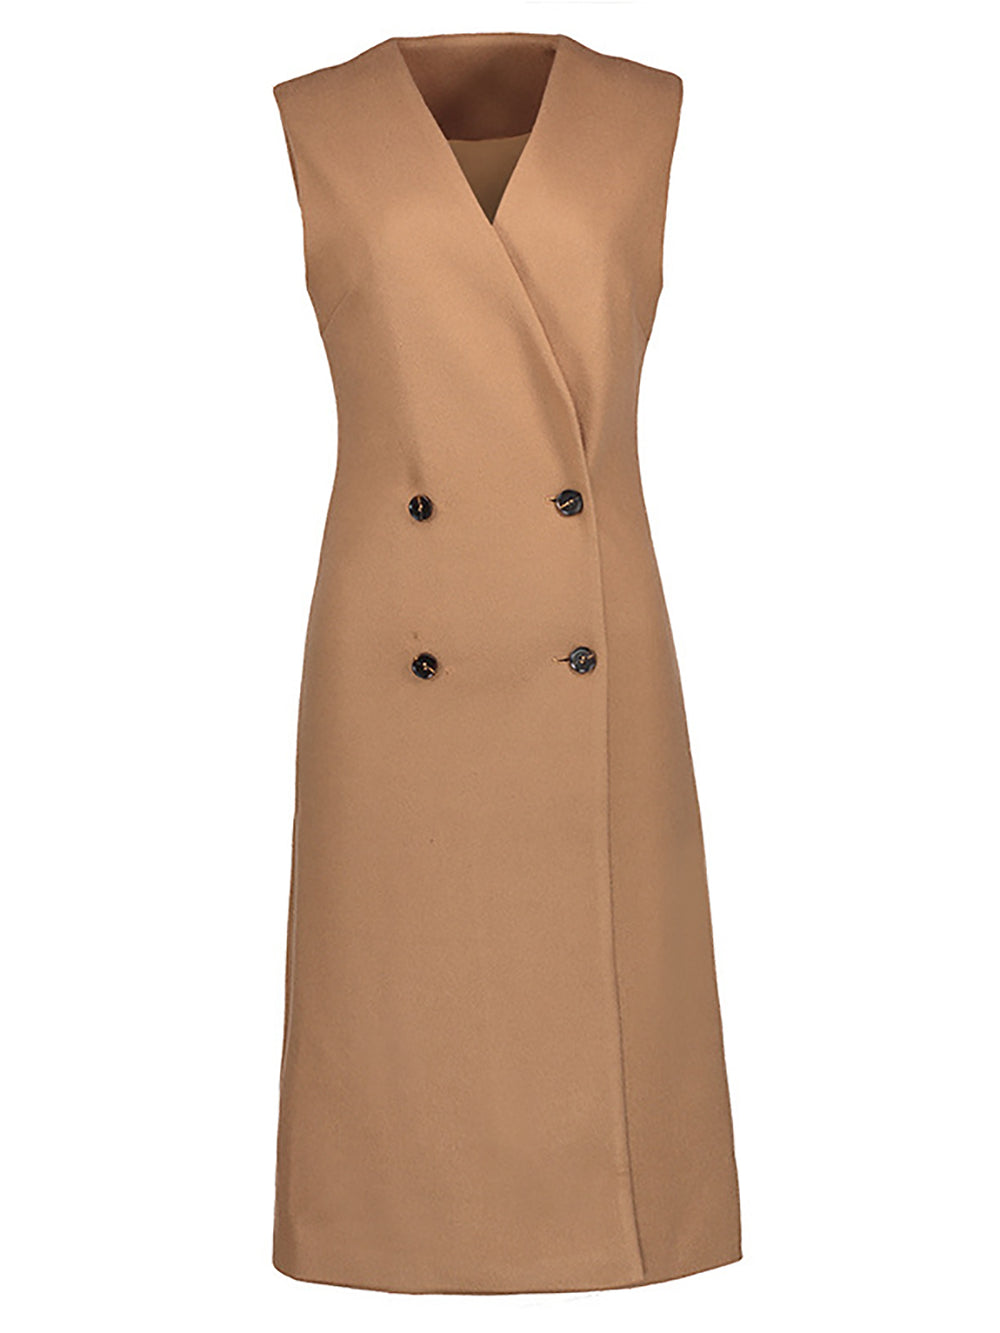 Camel Sleeveless Shift Buttoned Solid Vests And Gilets